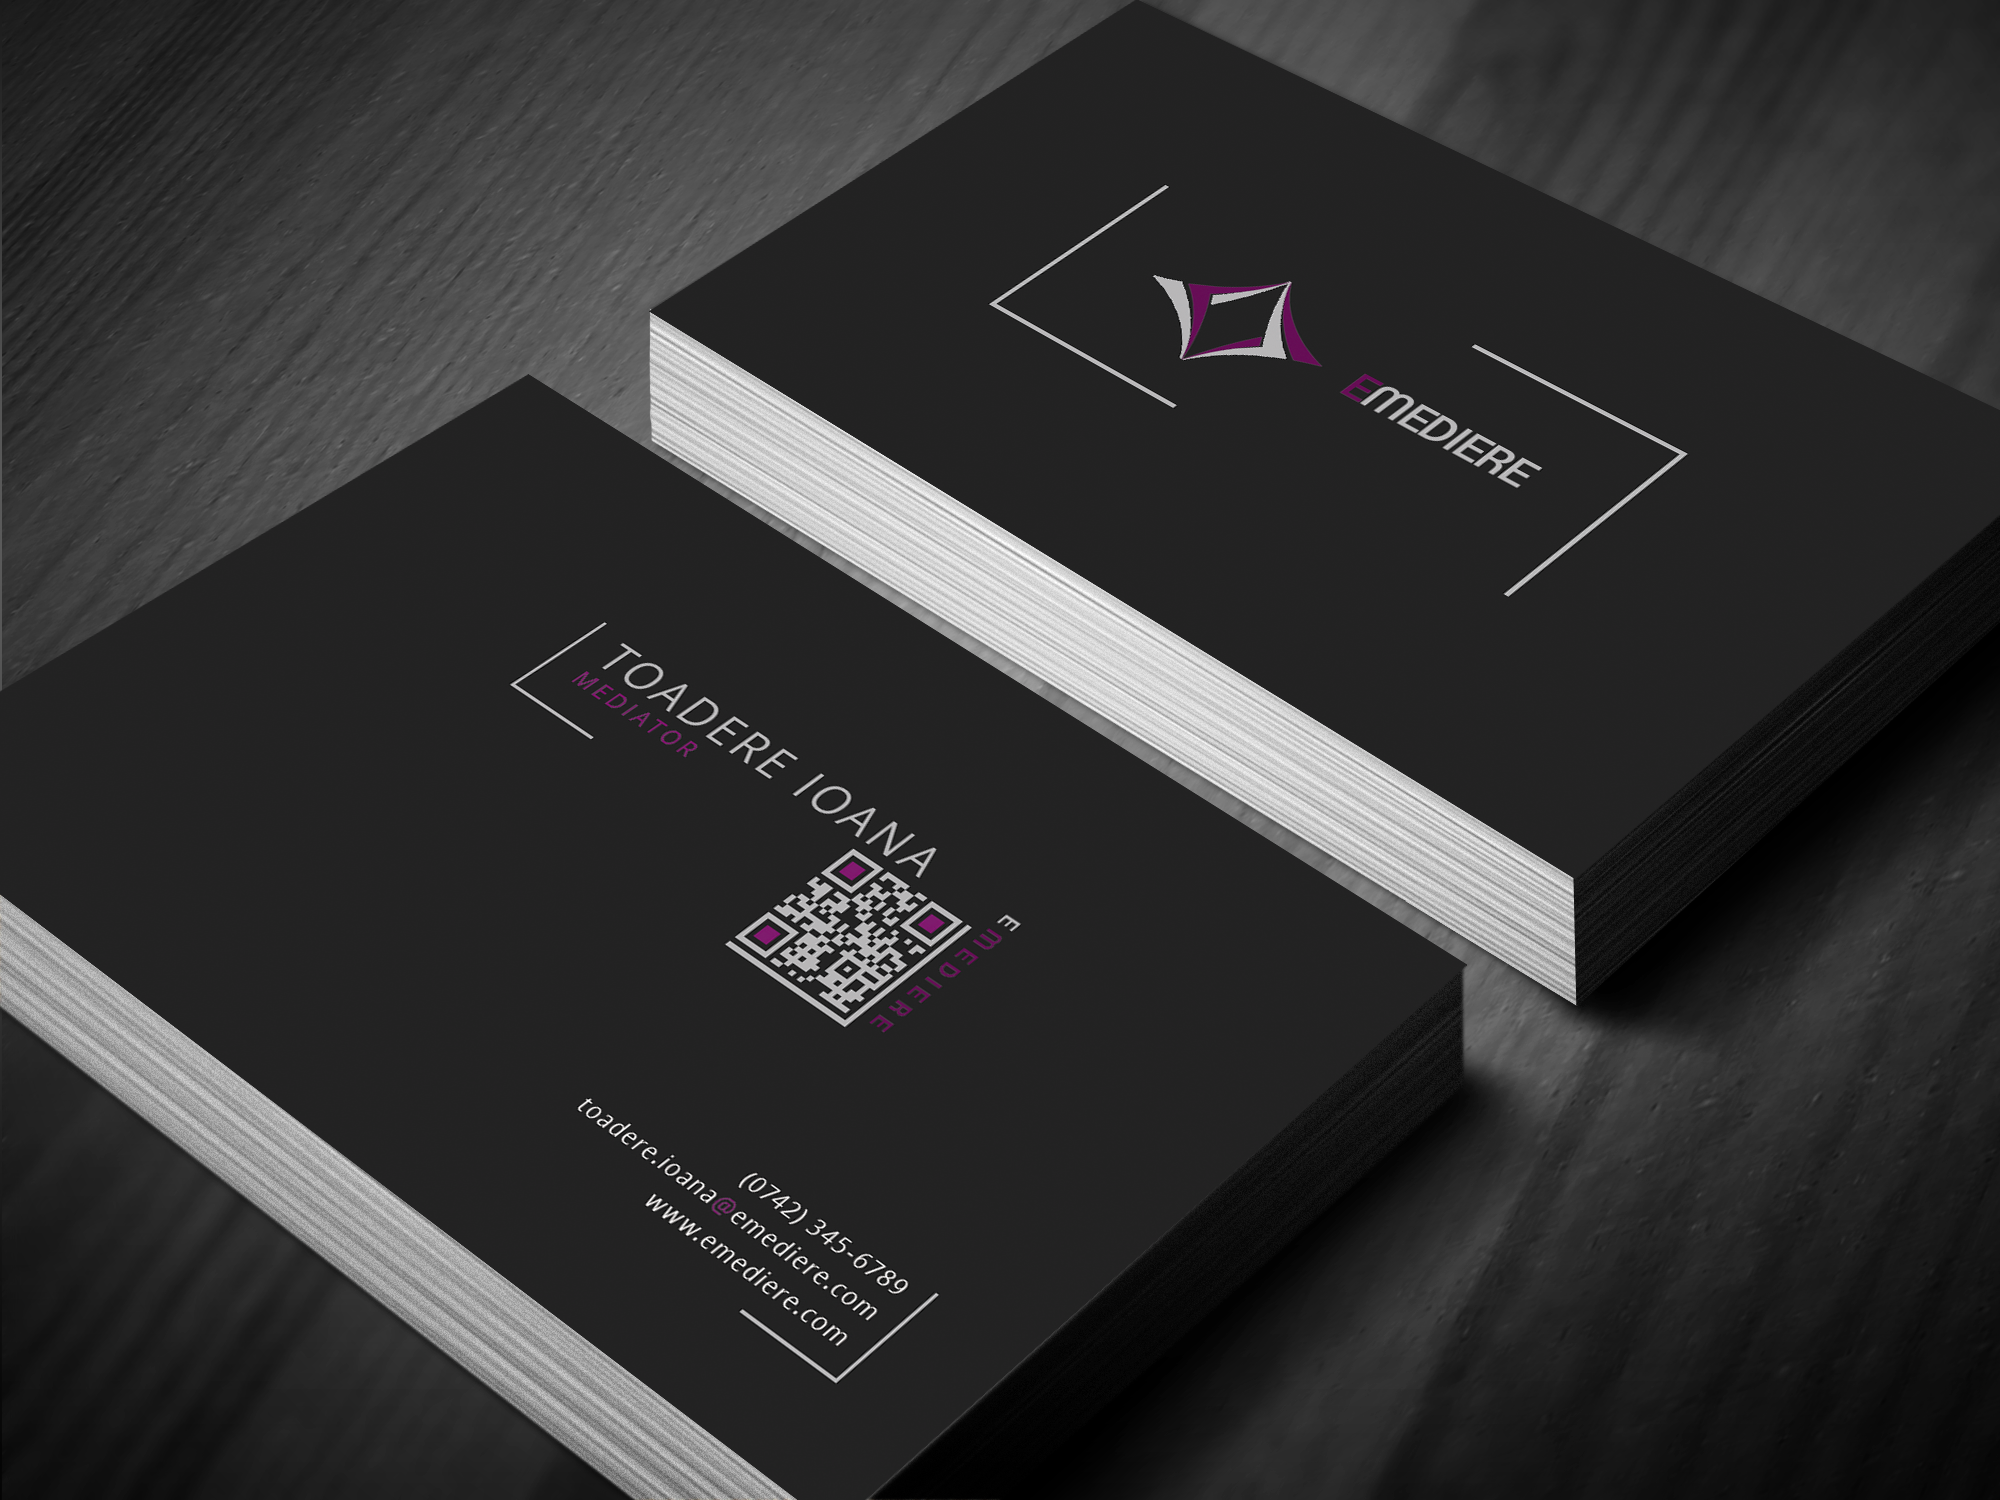 Emediere - lawyers business cards | Print | Pinterest | Business cards